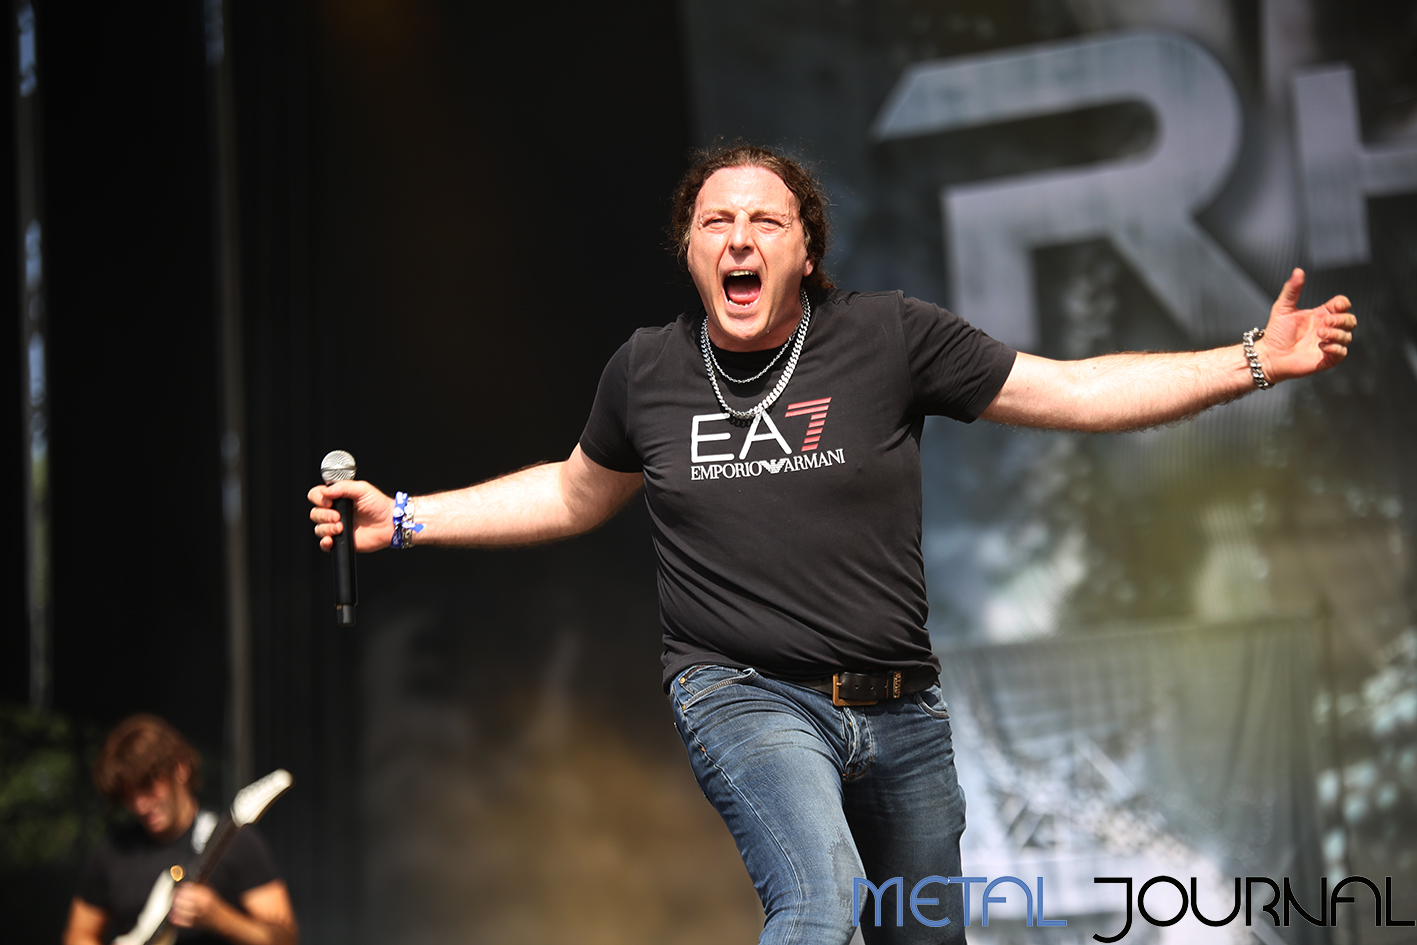 turilli lione rhapsody - metal journal rock fest barcelona 2019 pic 1